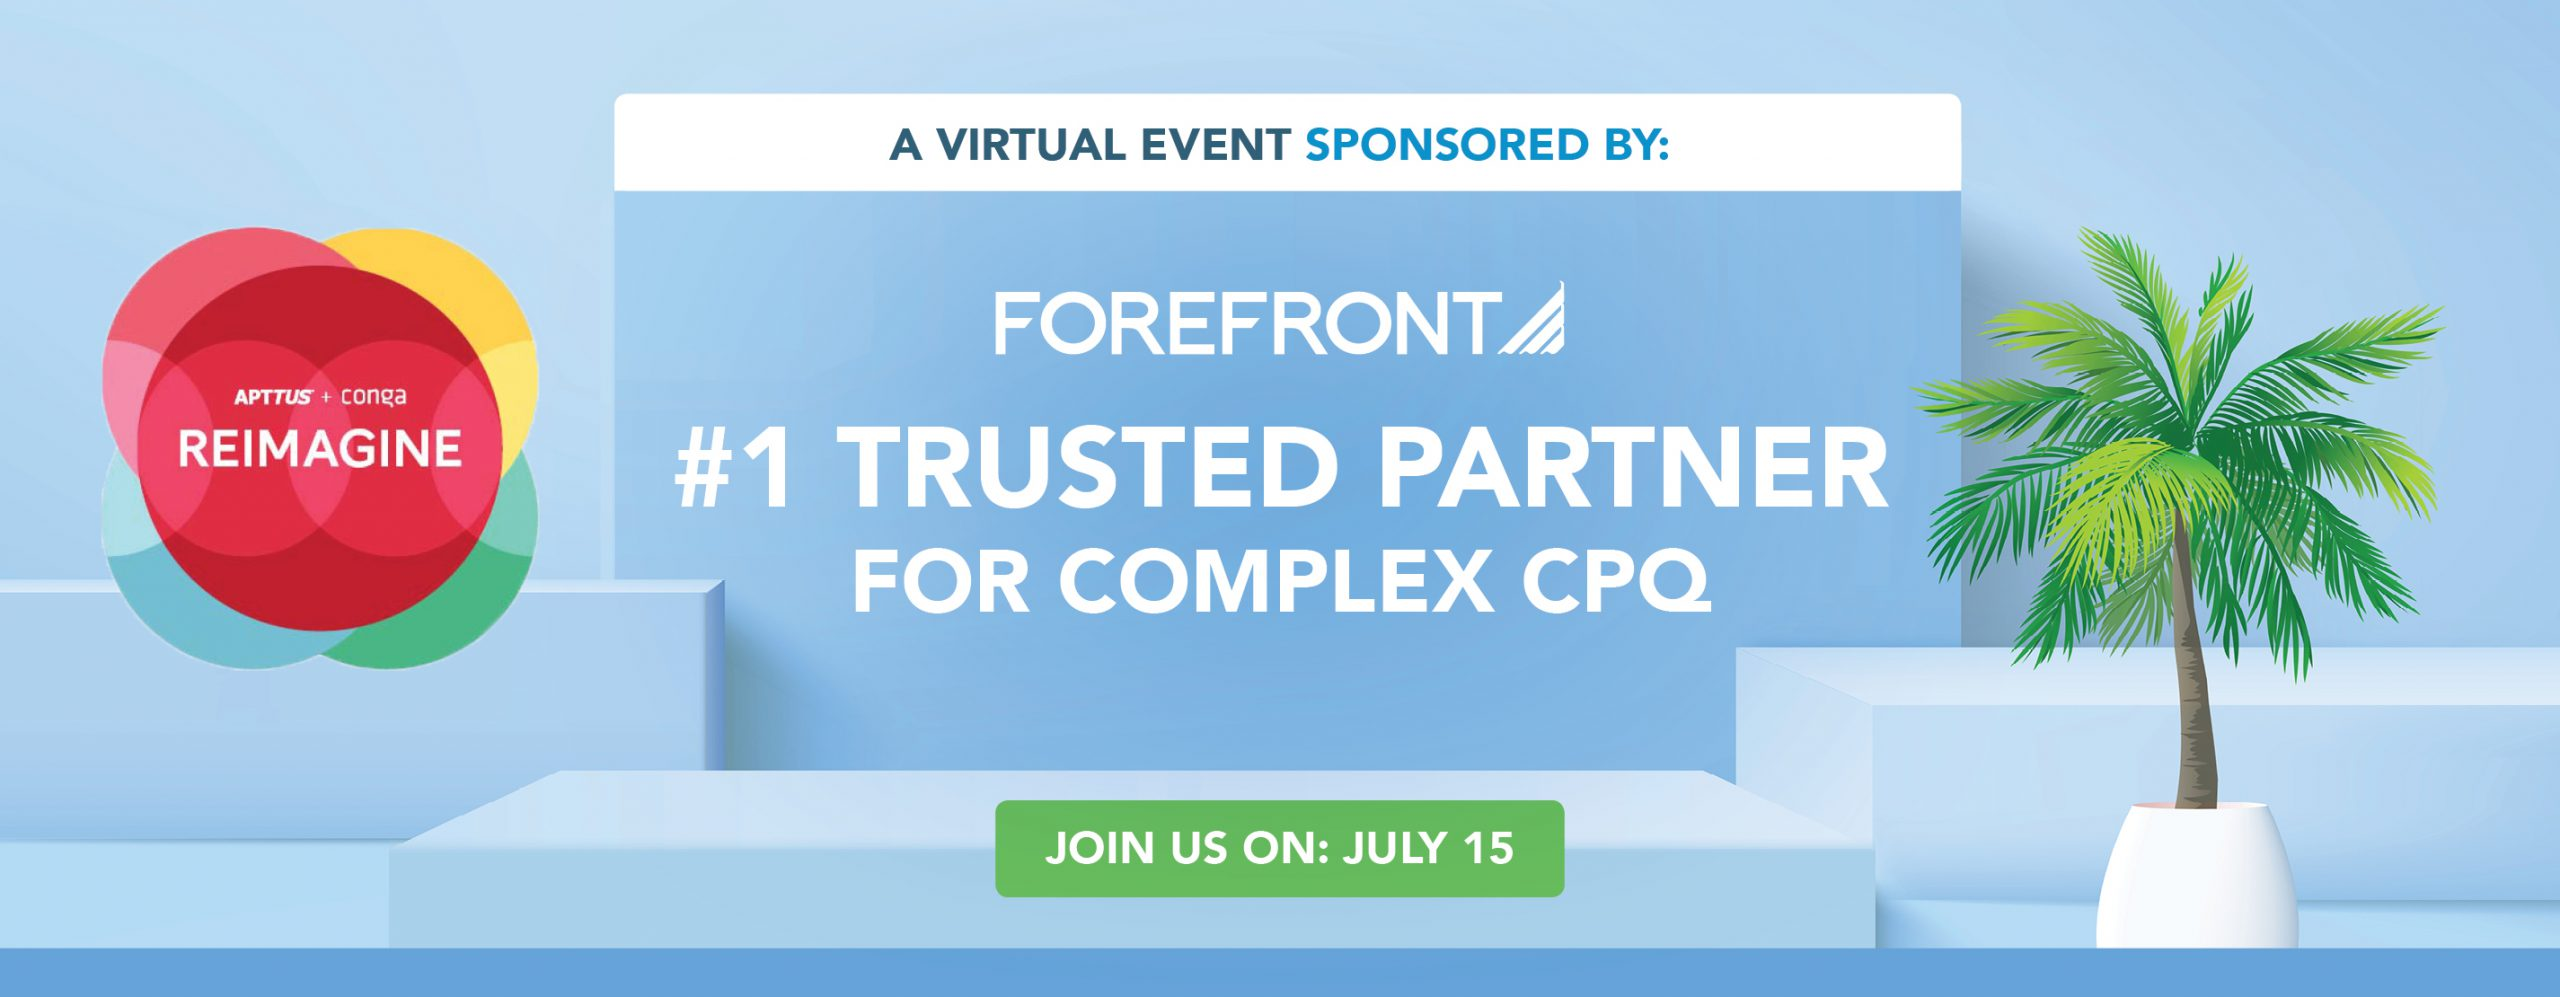 ForeFront, #1 Trusted CPQ Partner, Sponsoring Reimagine Event